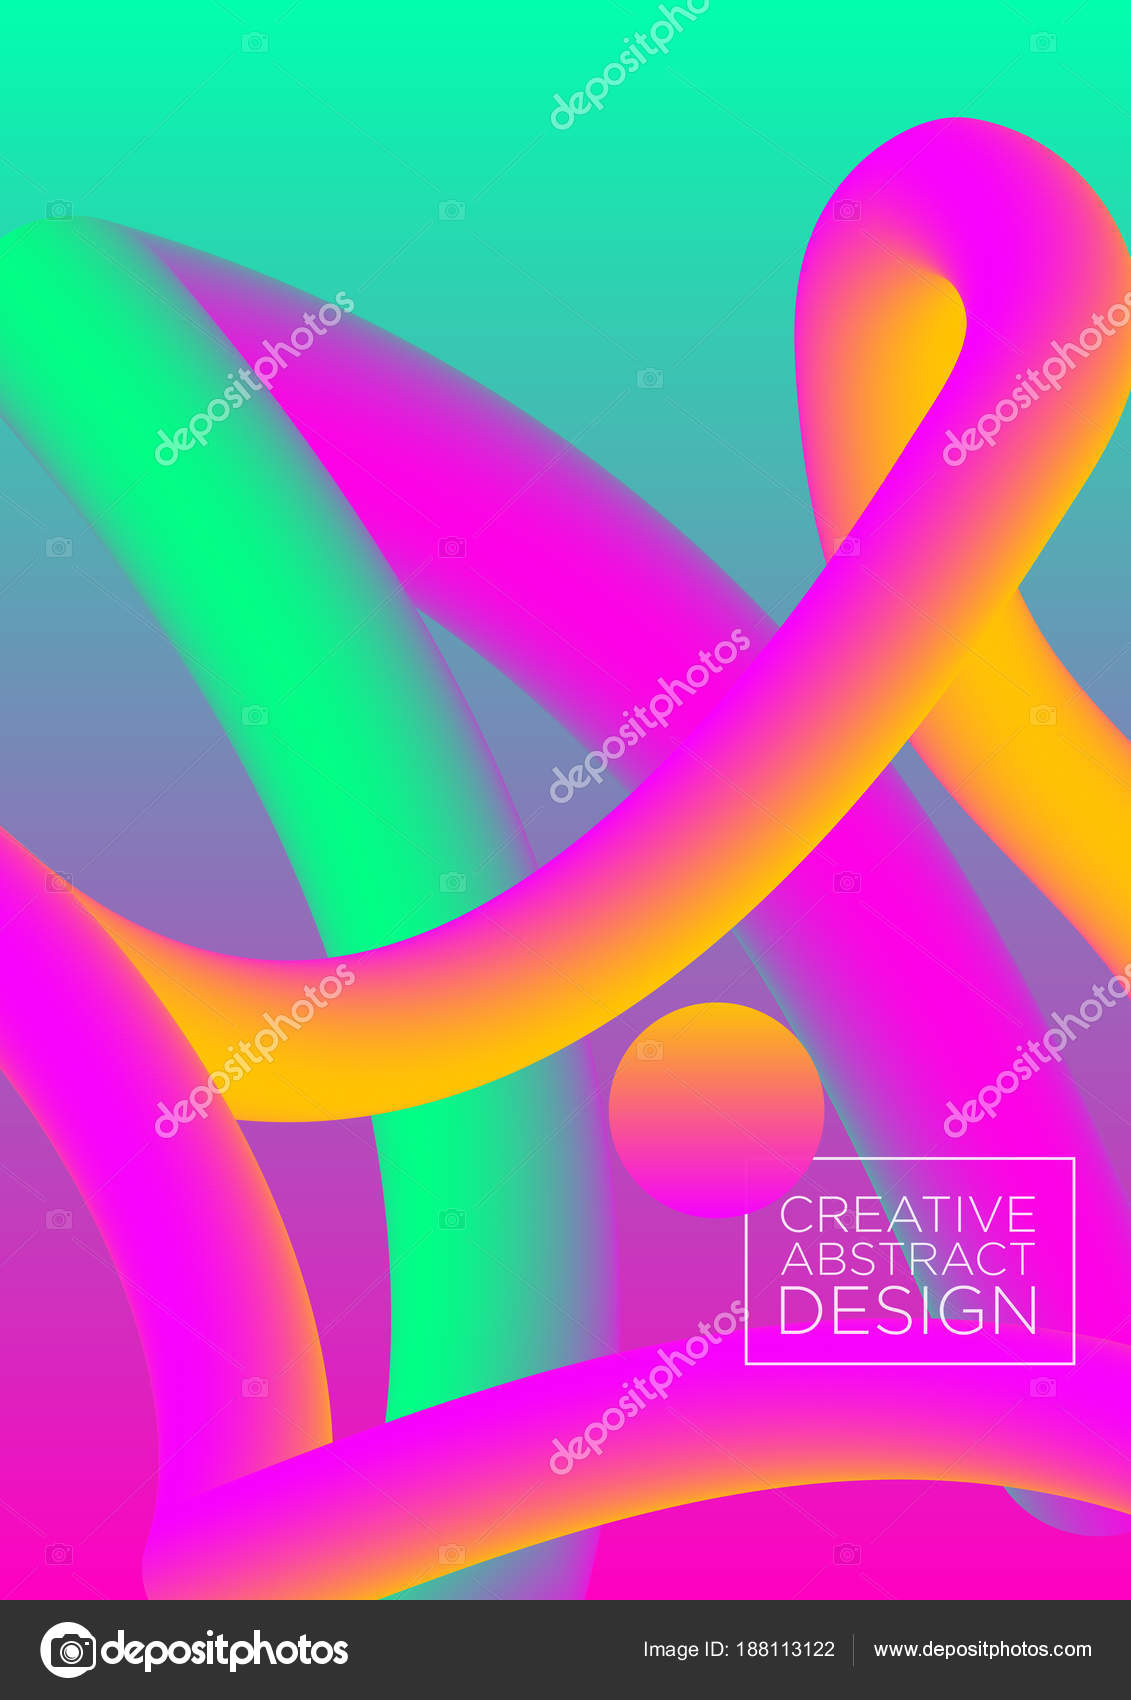 Vektor Illustration 3d Abstract In Hell Rosa Und Gruner